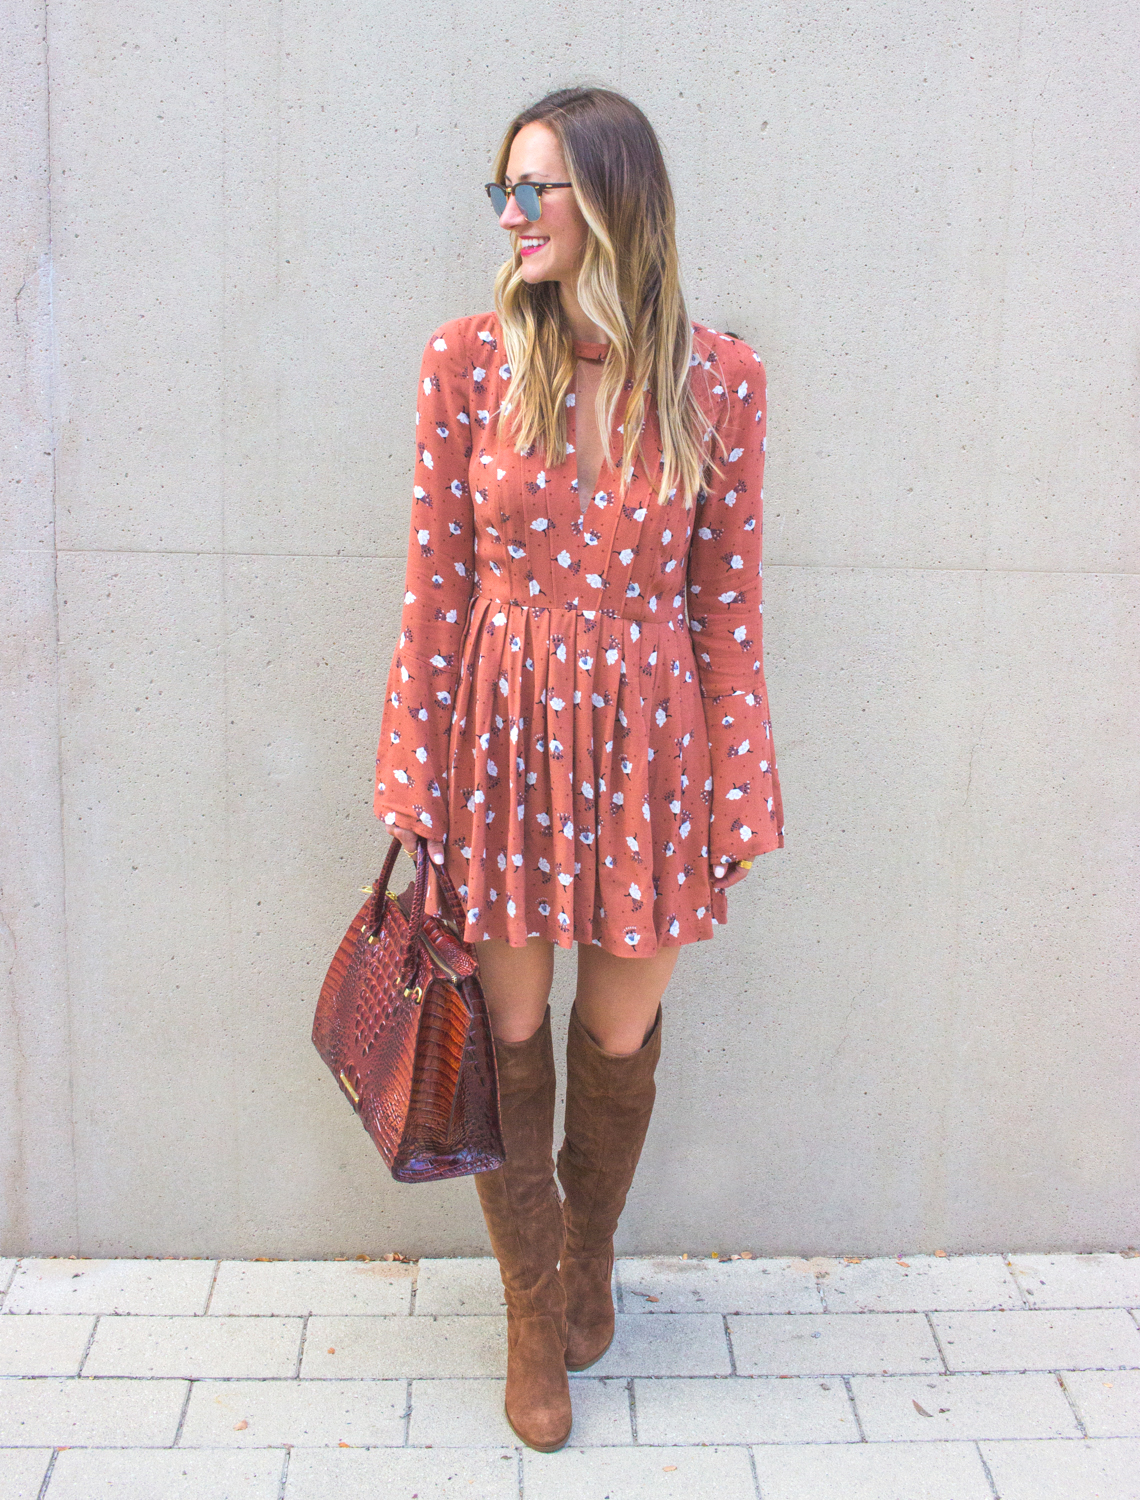 livvyland-blog-olivia-watson-fall-outfit-over-the-knee-boots-tegan-mini-dress-steve-madden-eternul-brahmin-priscilla-satchel-9